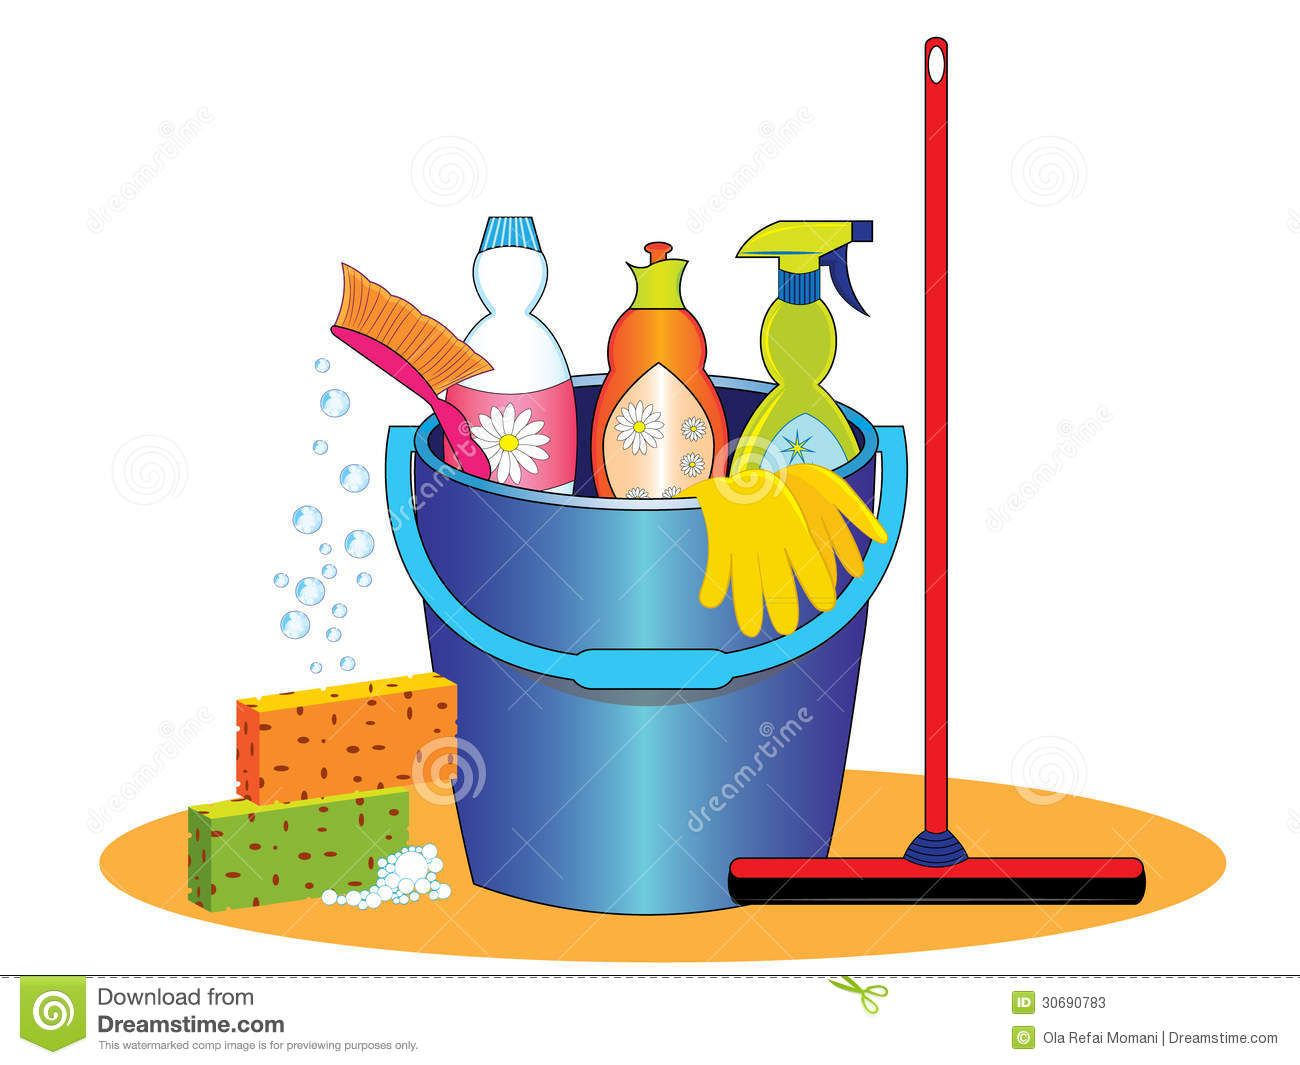 Janitorial supplies clipart image library library Cleaning Supplies Clip Art Cleaning products clipart | First Then ... image library library